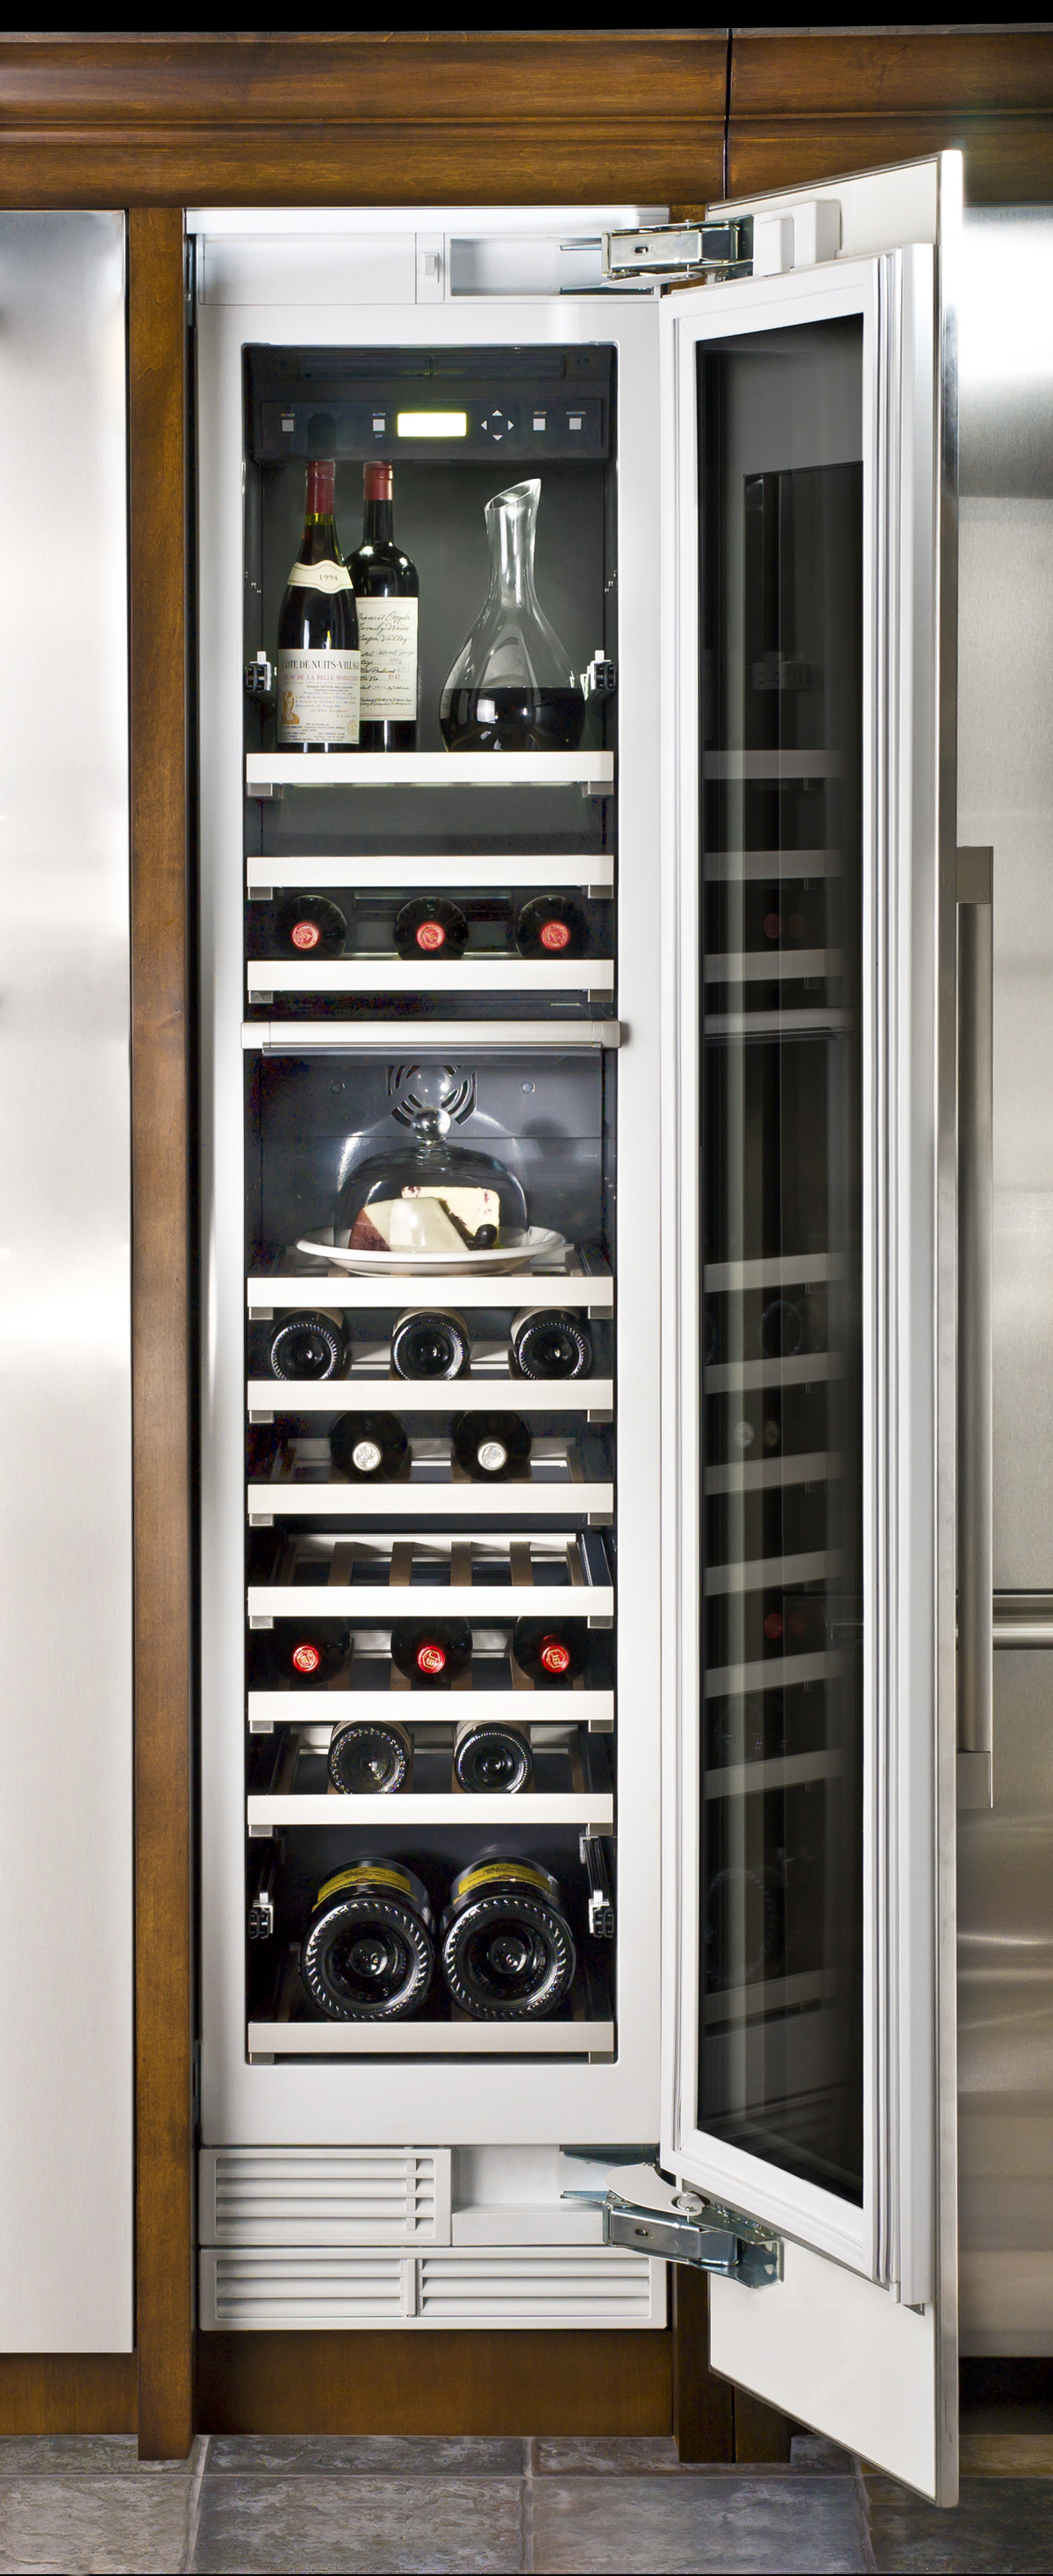 Adex Awards Design Journal Thermador Wine Cooler By Bsh